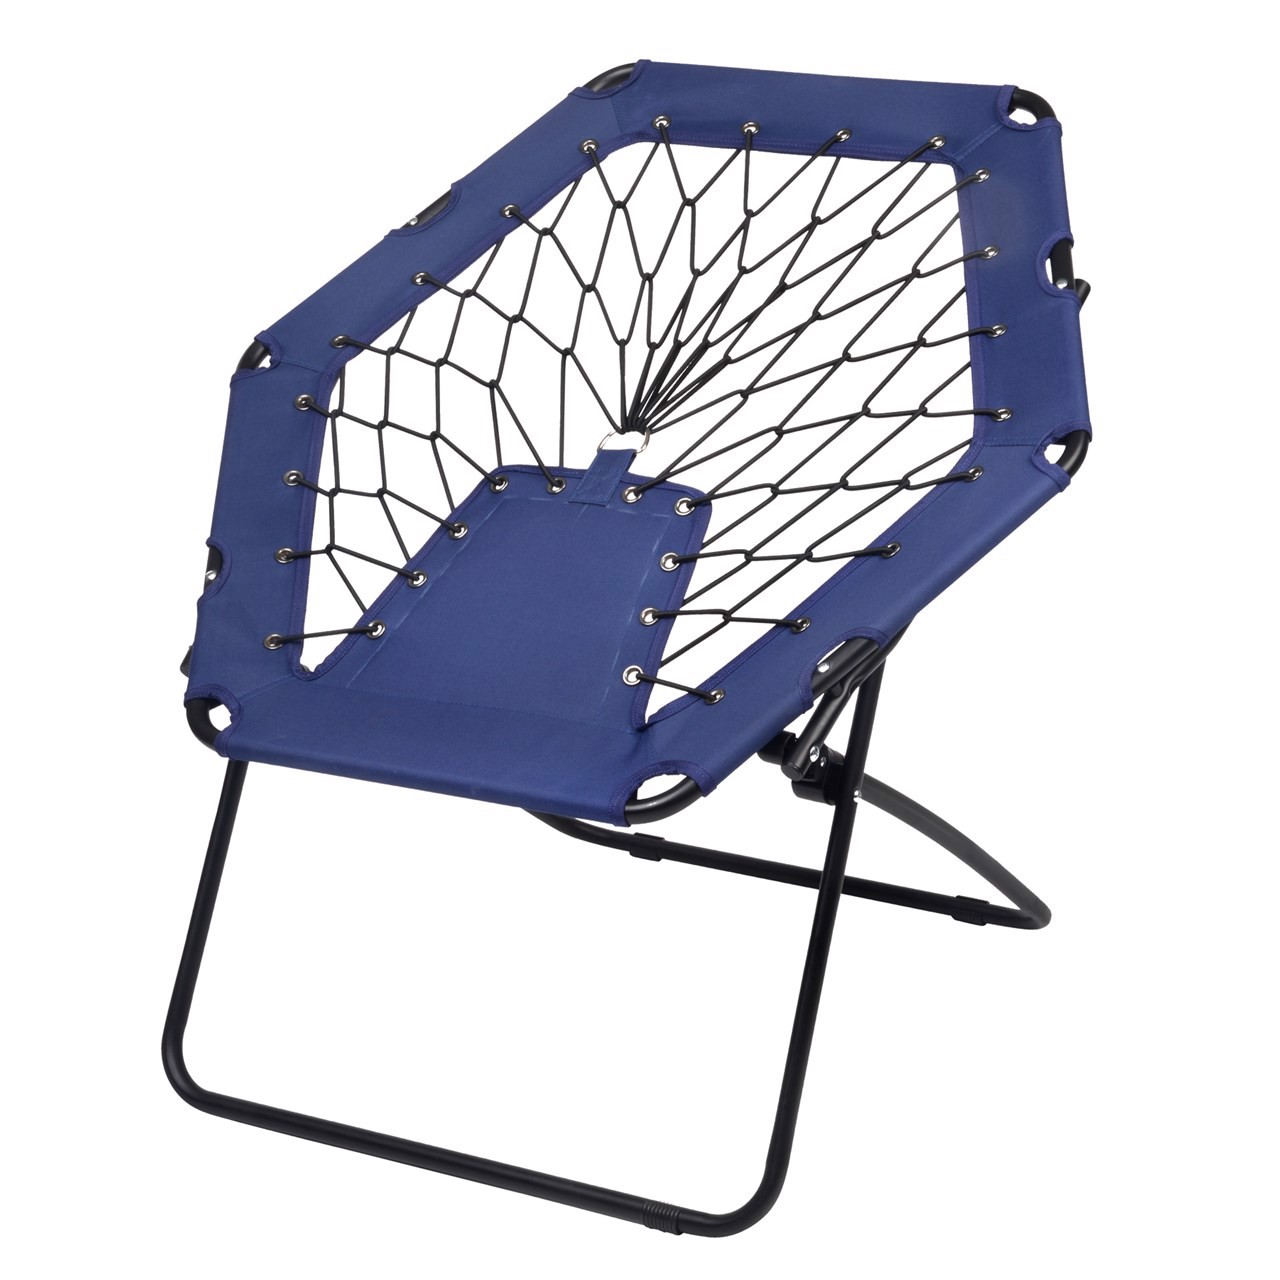 Portable Bungee Chair Chill Out Black Blue Europegift